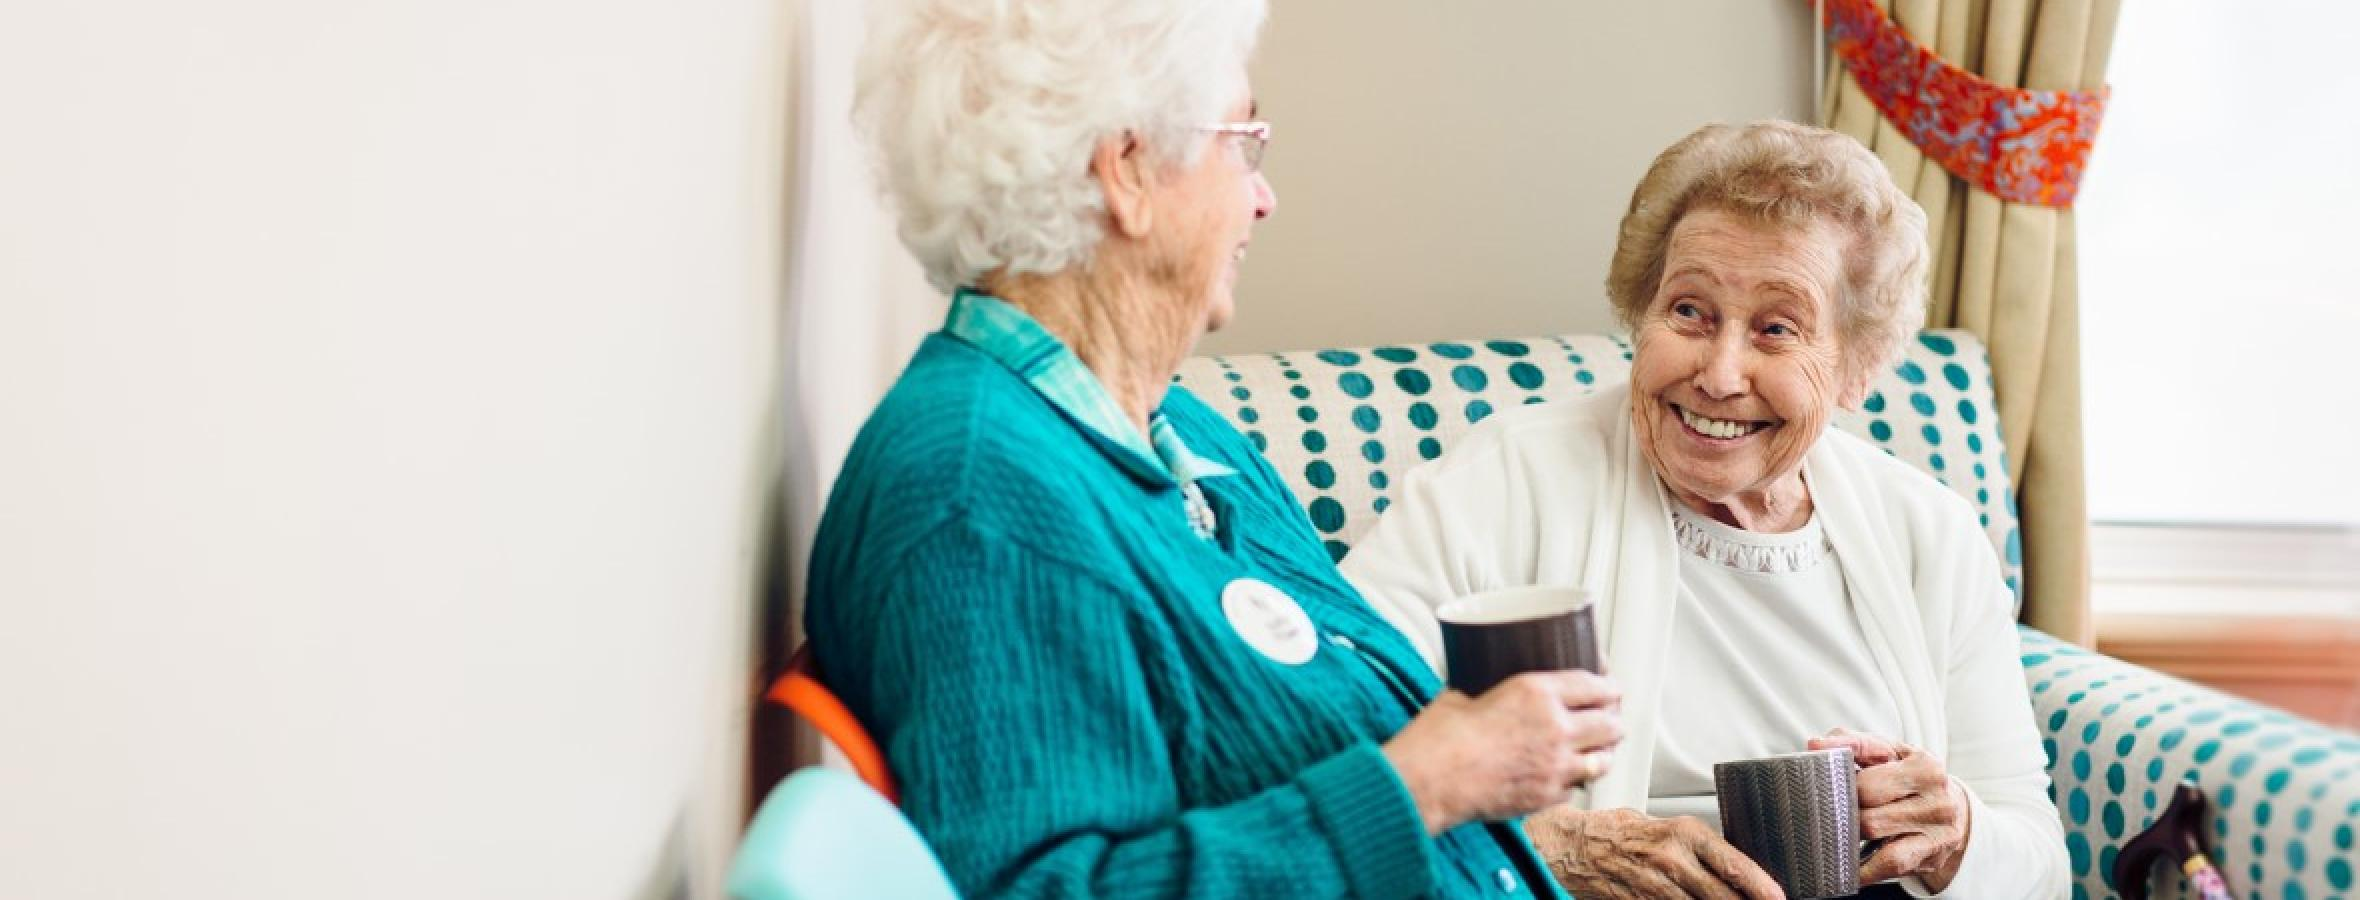 What type of aged care services is available?